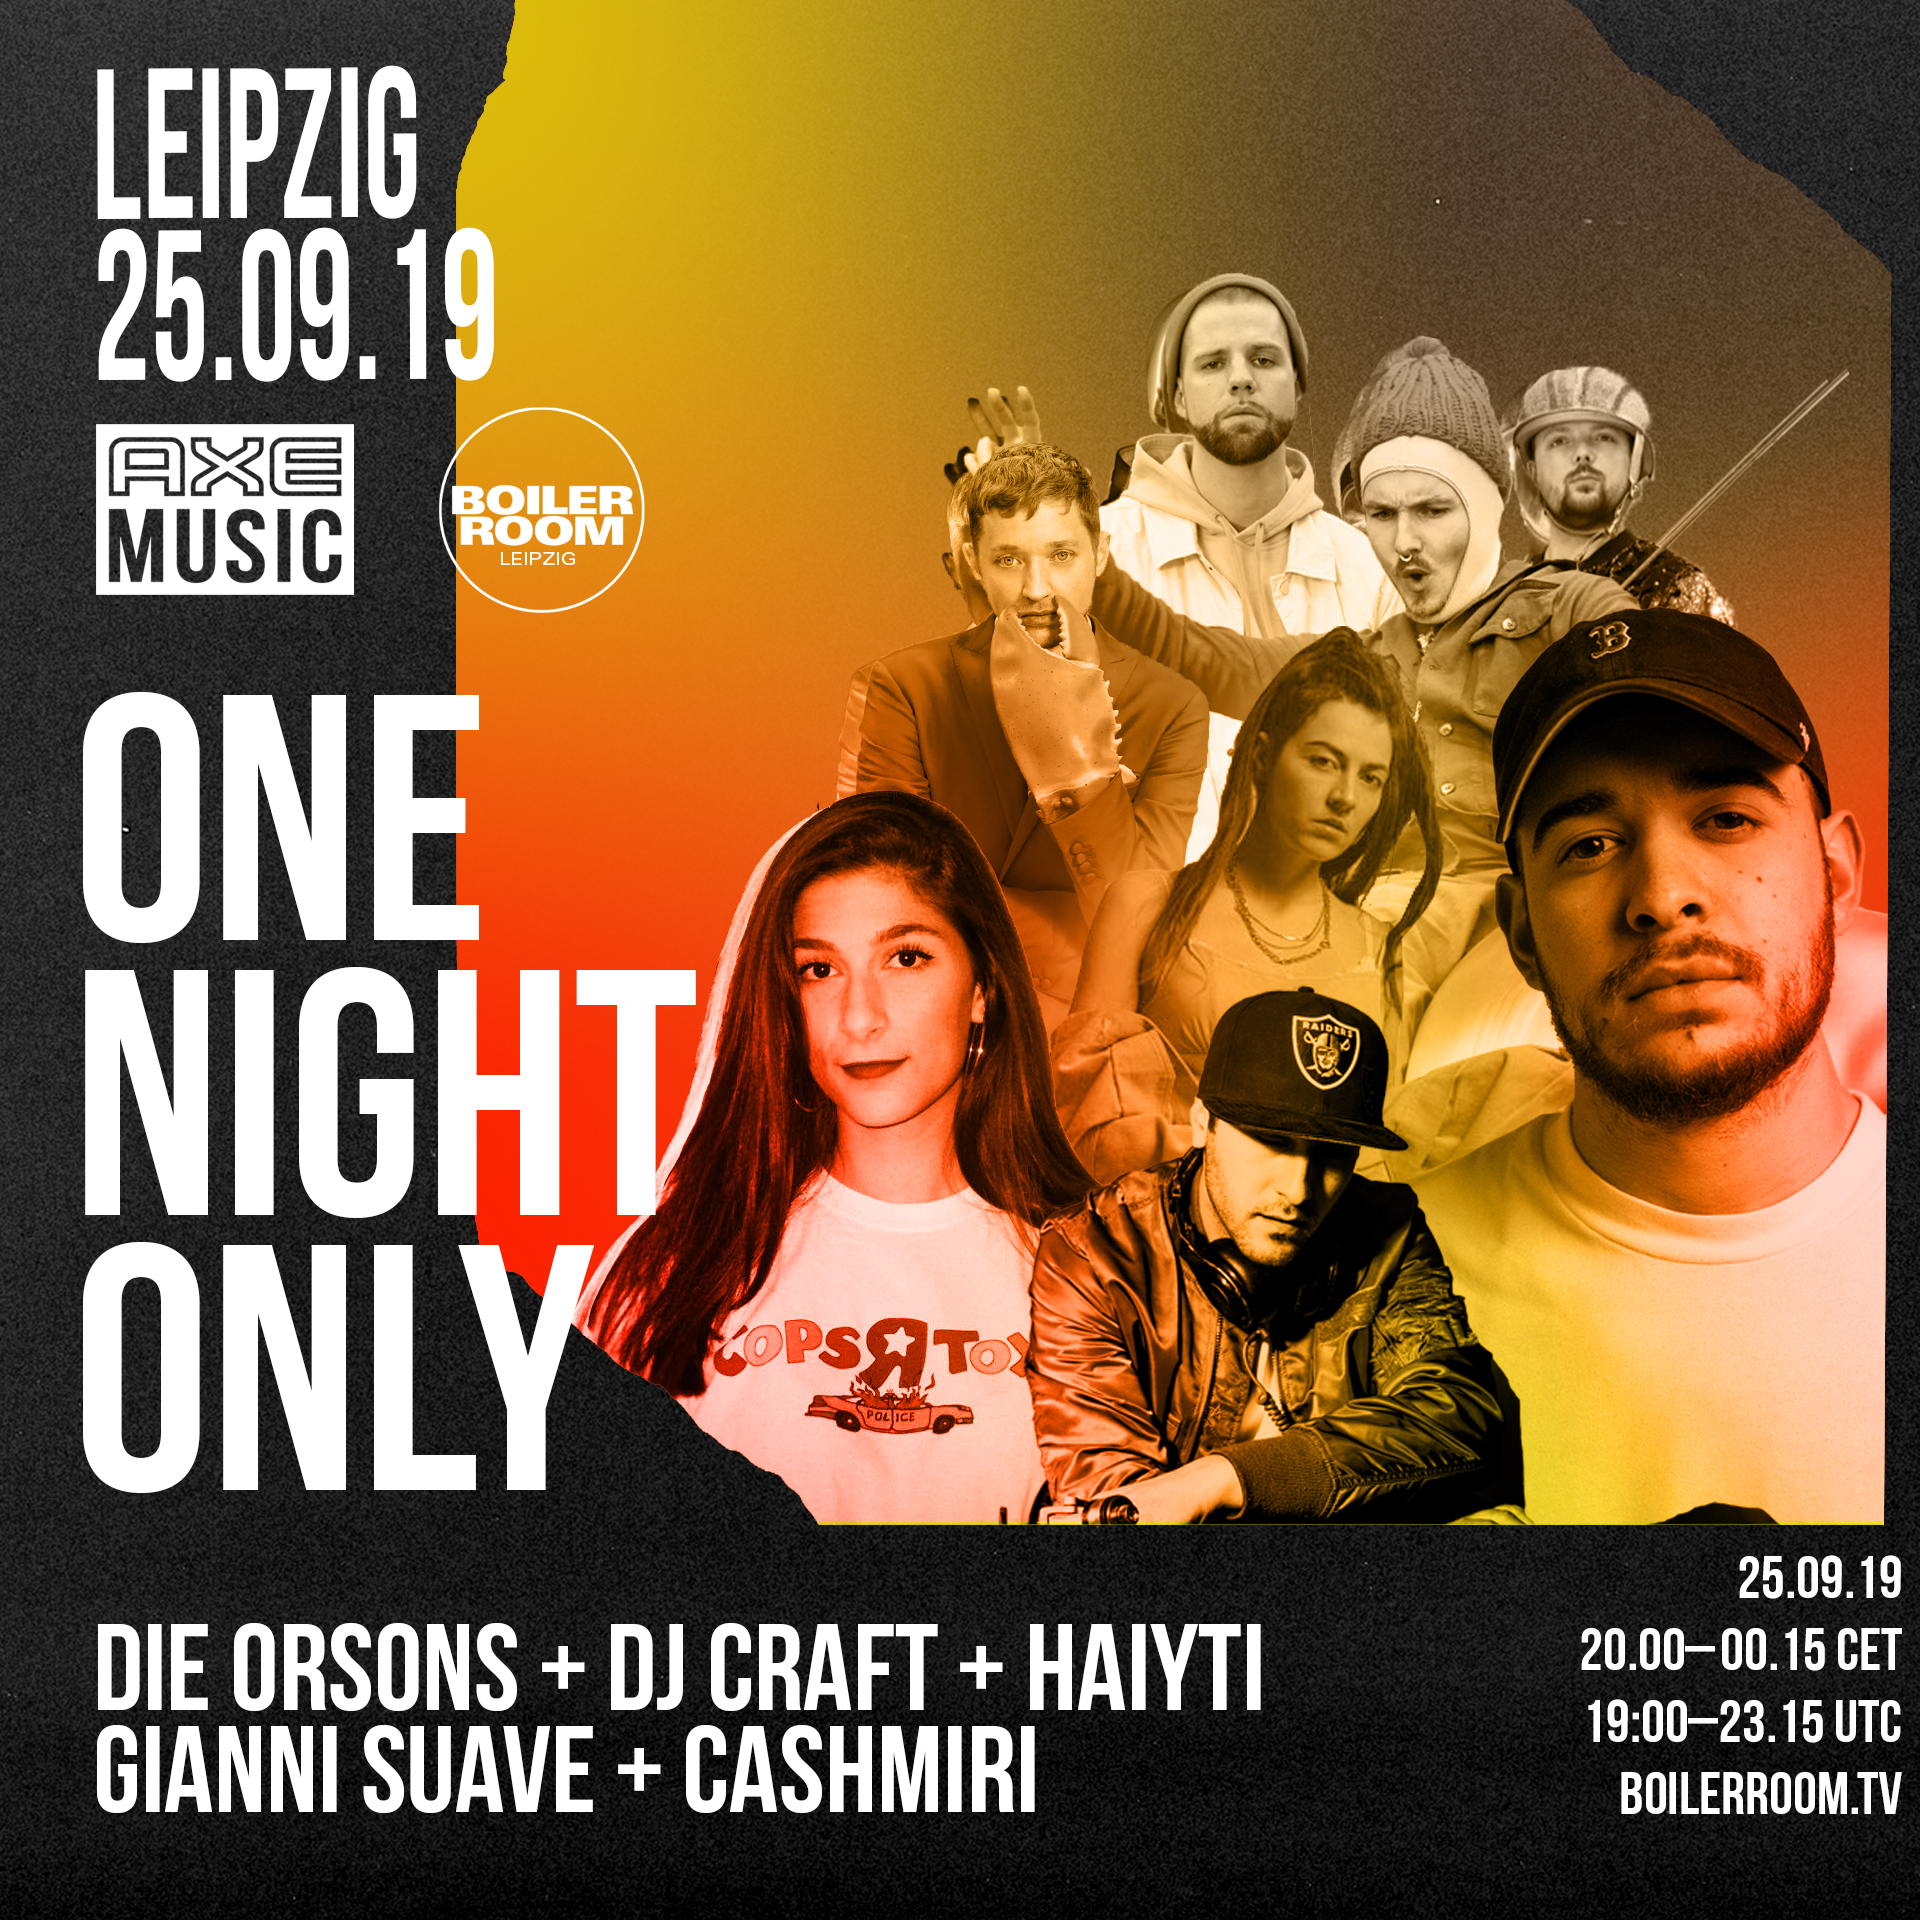 AXE Music | One Night Only Leipzig Flyer Image